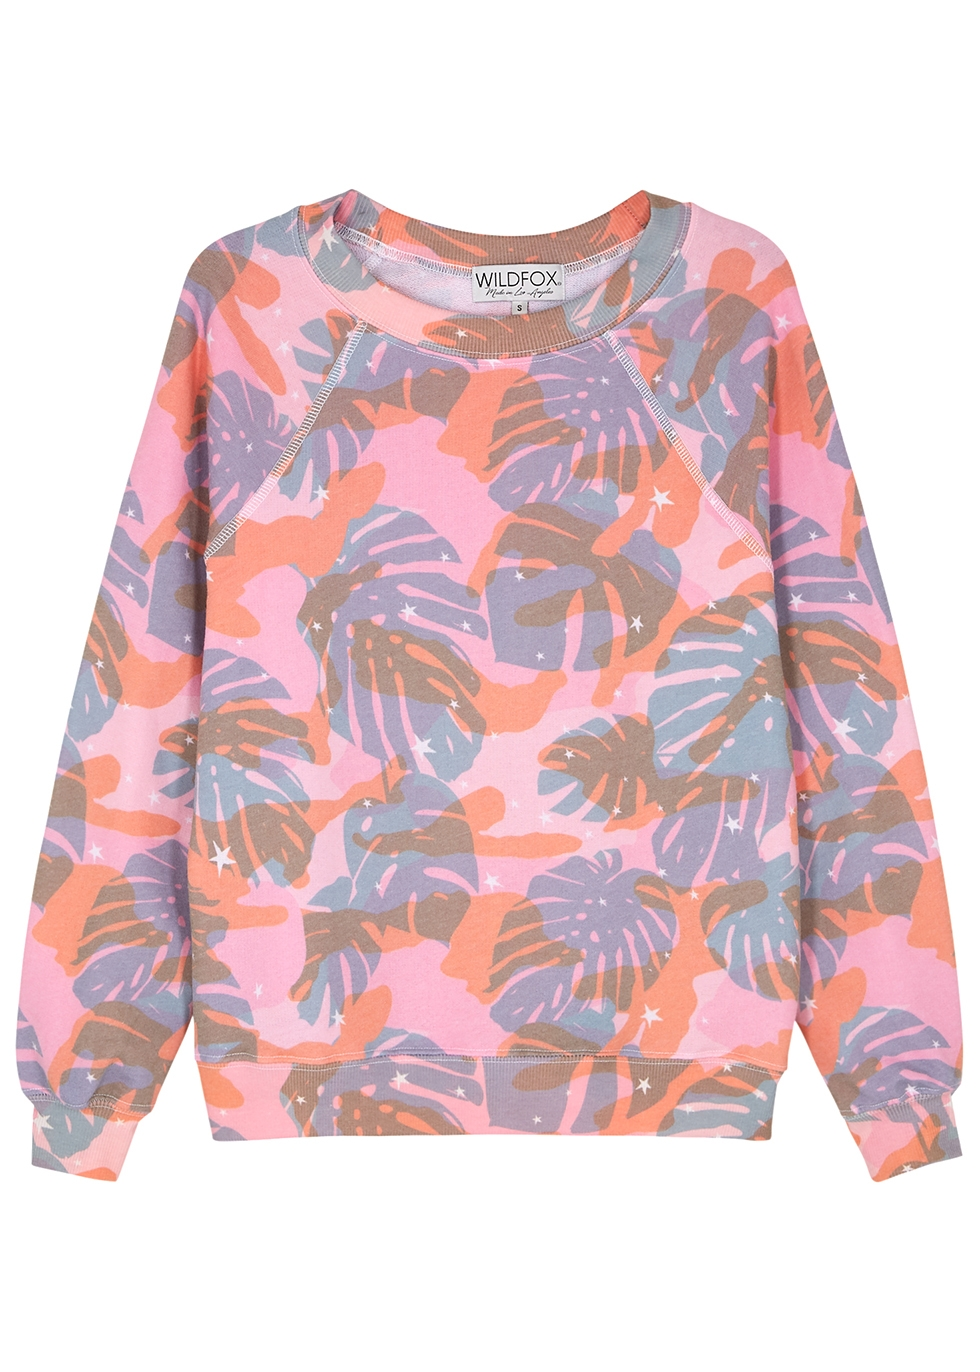 Sommers printed jersey sweatshirt - Wildfox